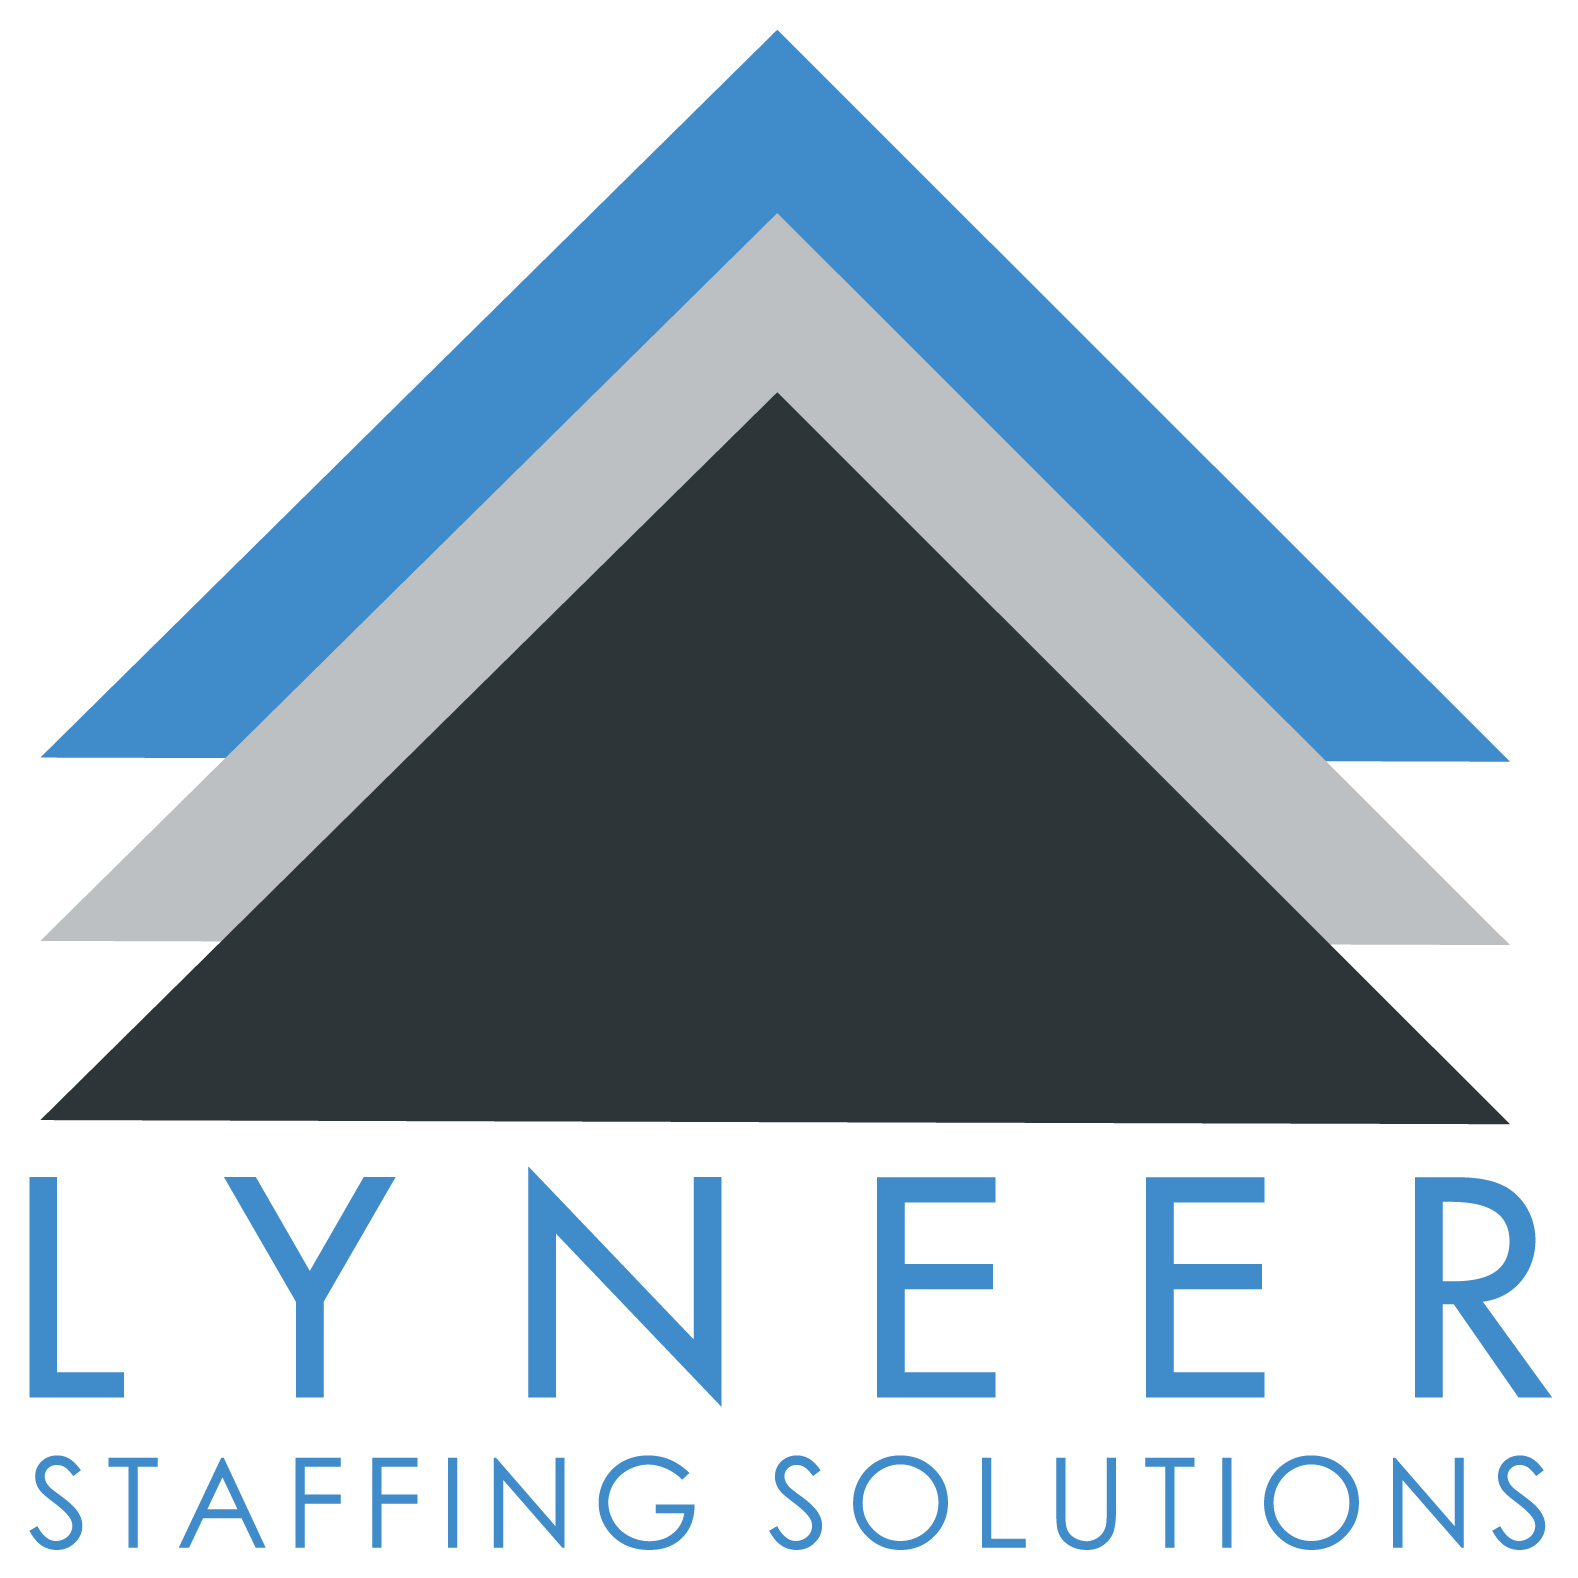 Certified Phlebotomist Job In Seattle Wa At Lyneer Staffing